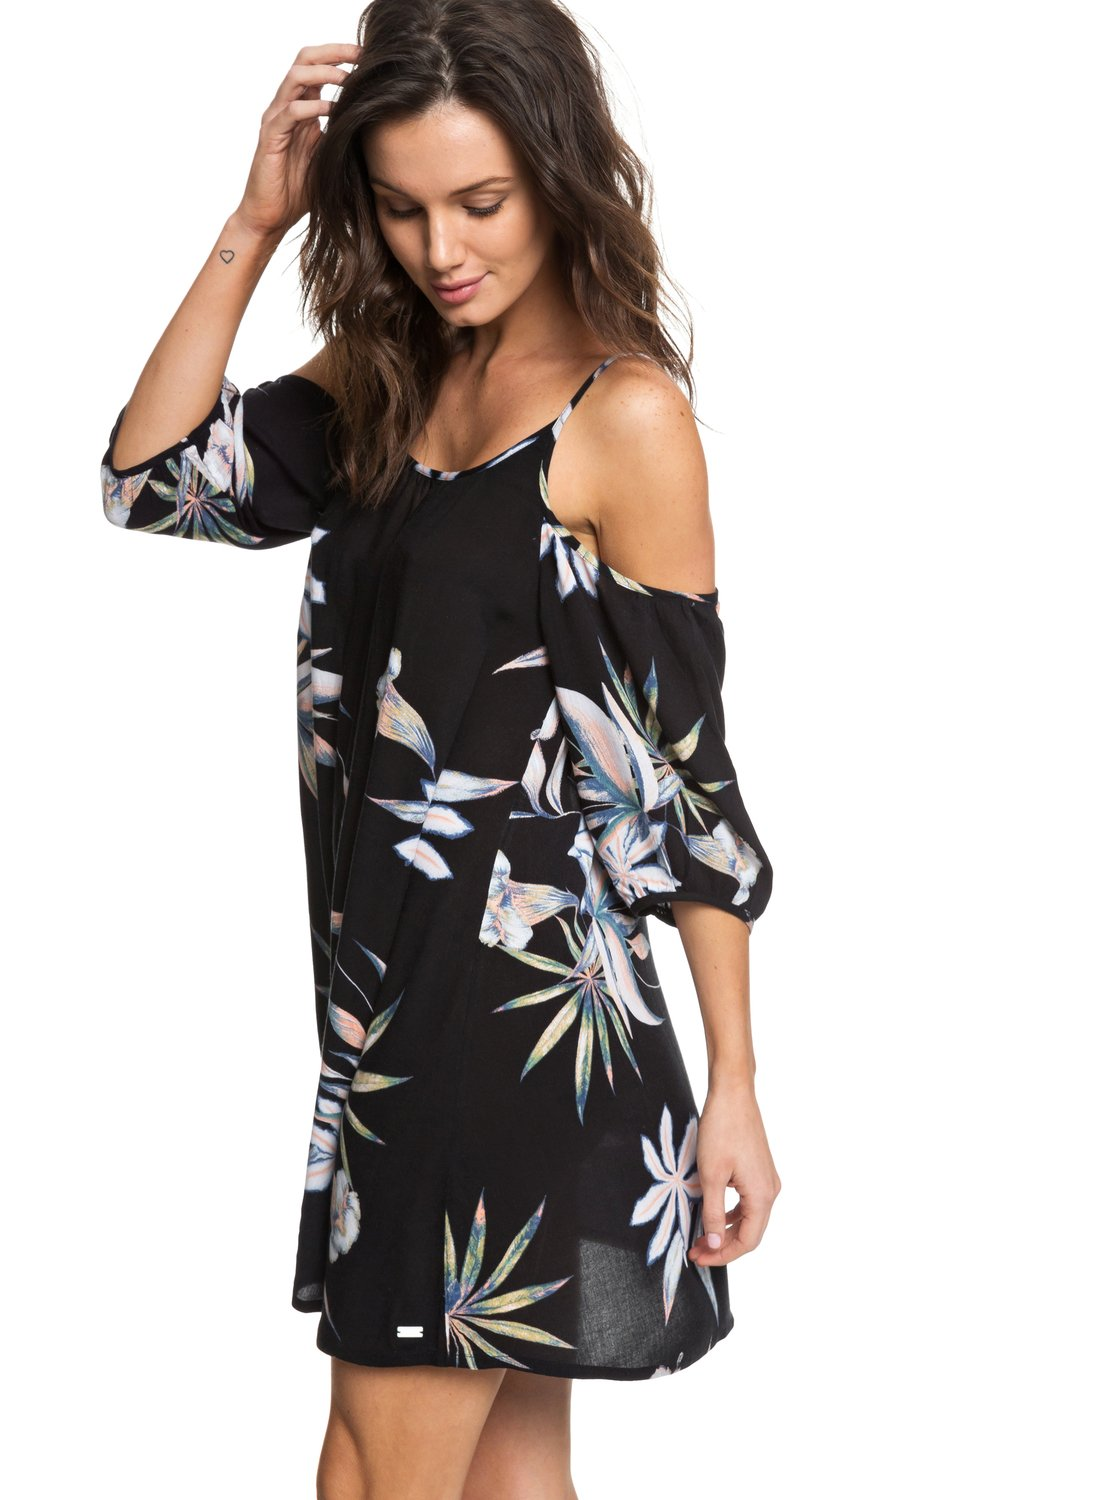 14a4ffec39 Roxy™ Baliana - Short Sleeve Beach Dress - Women - S - Black